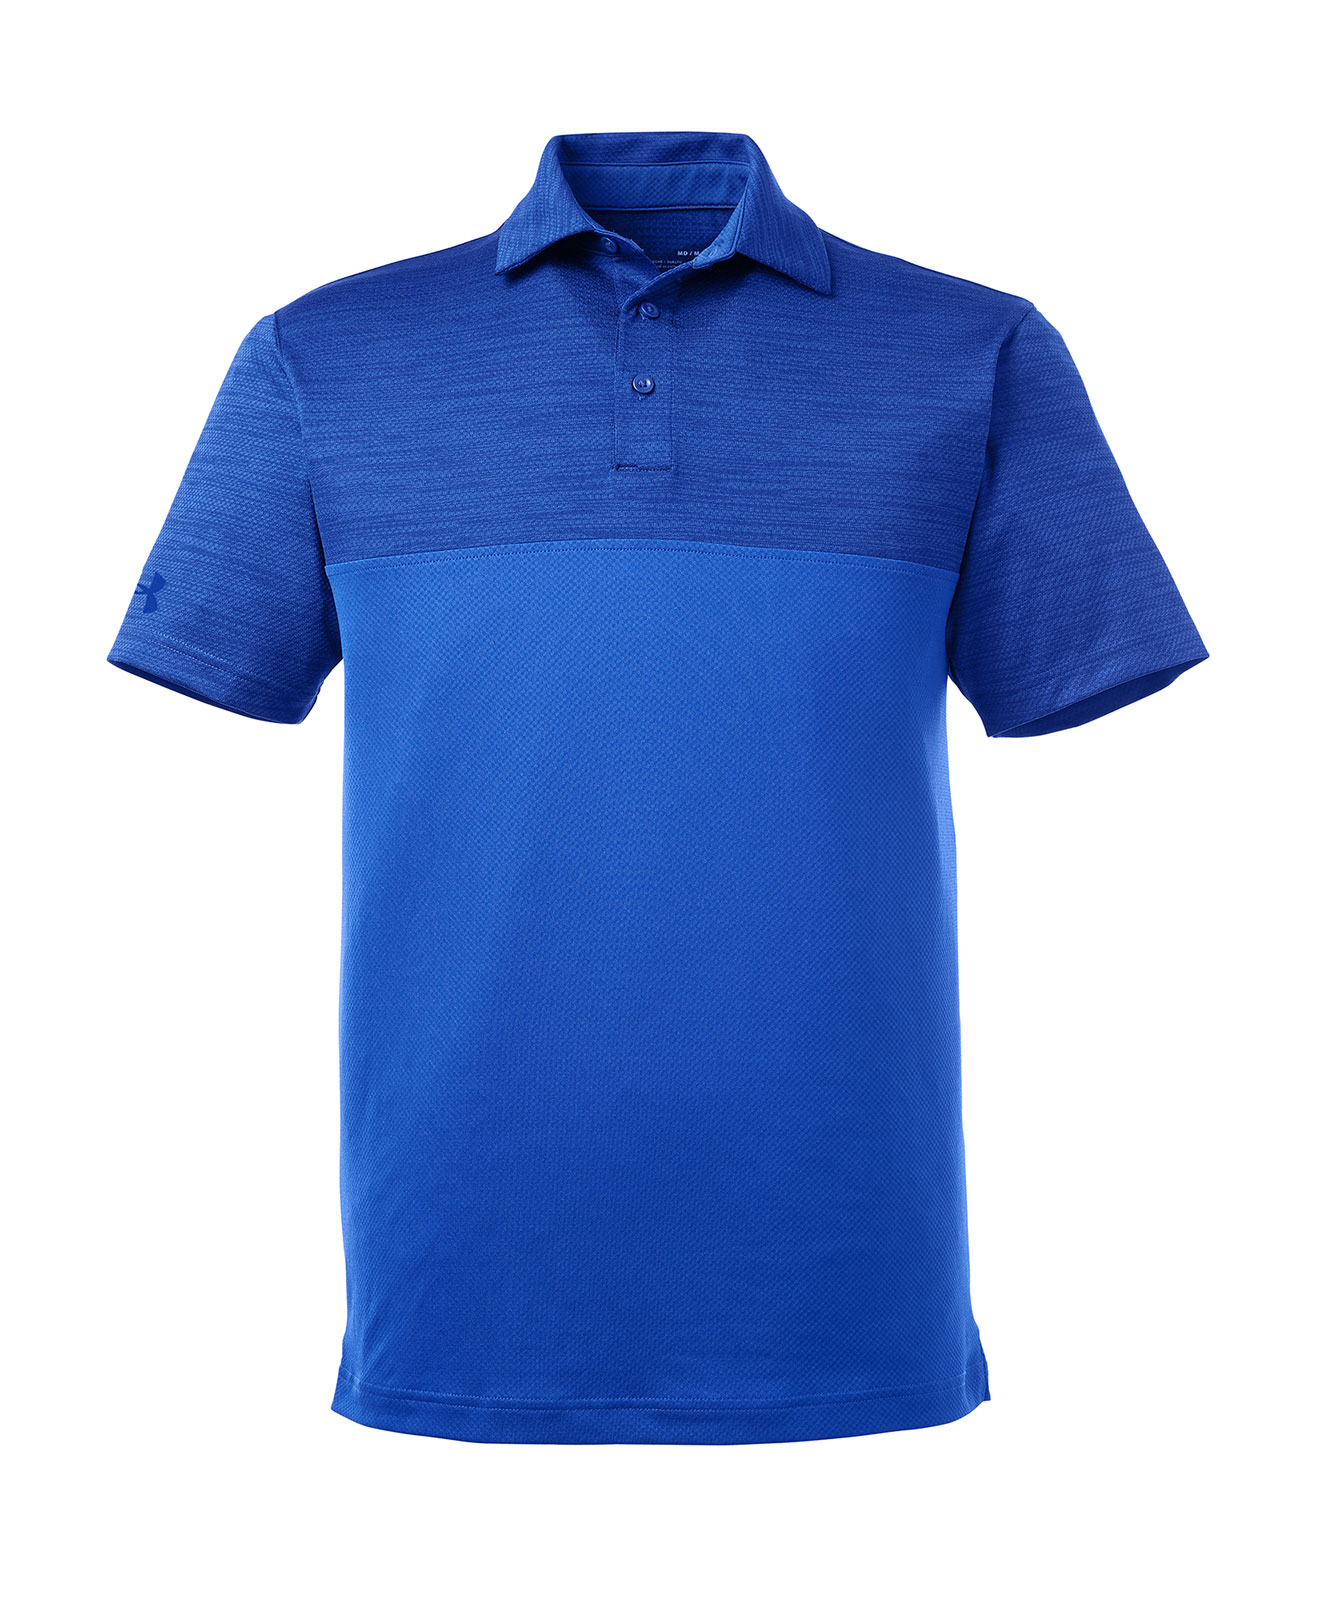 Under Armour Mens Corporate Colorblock Polo